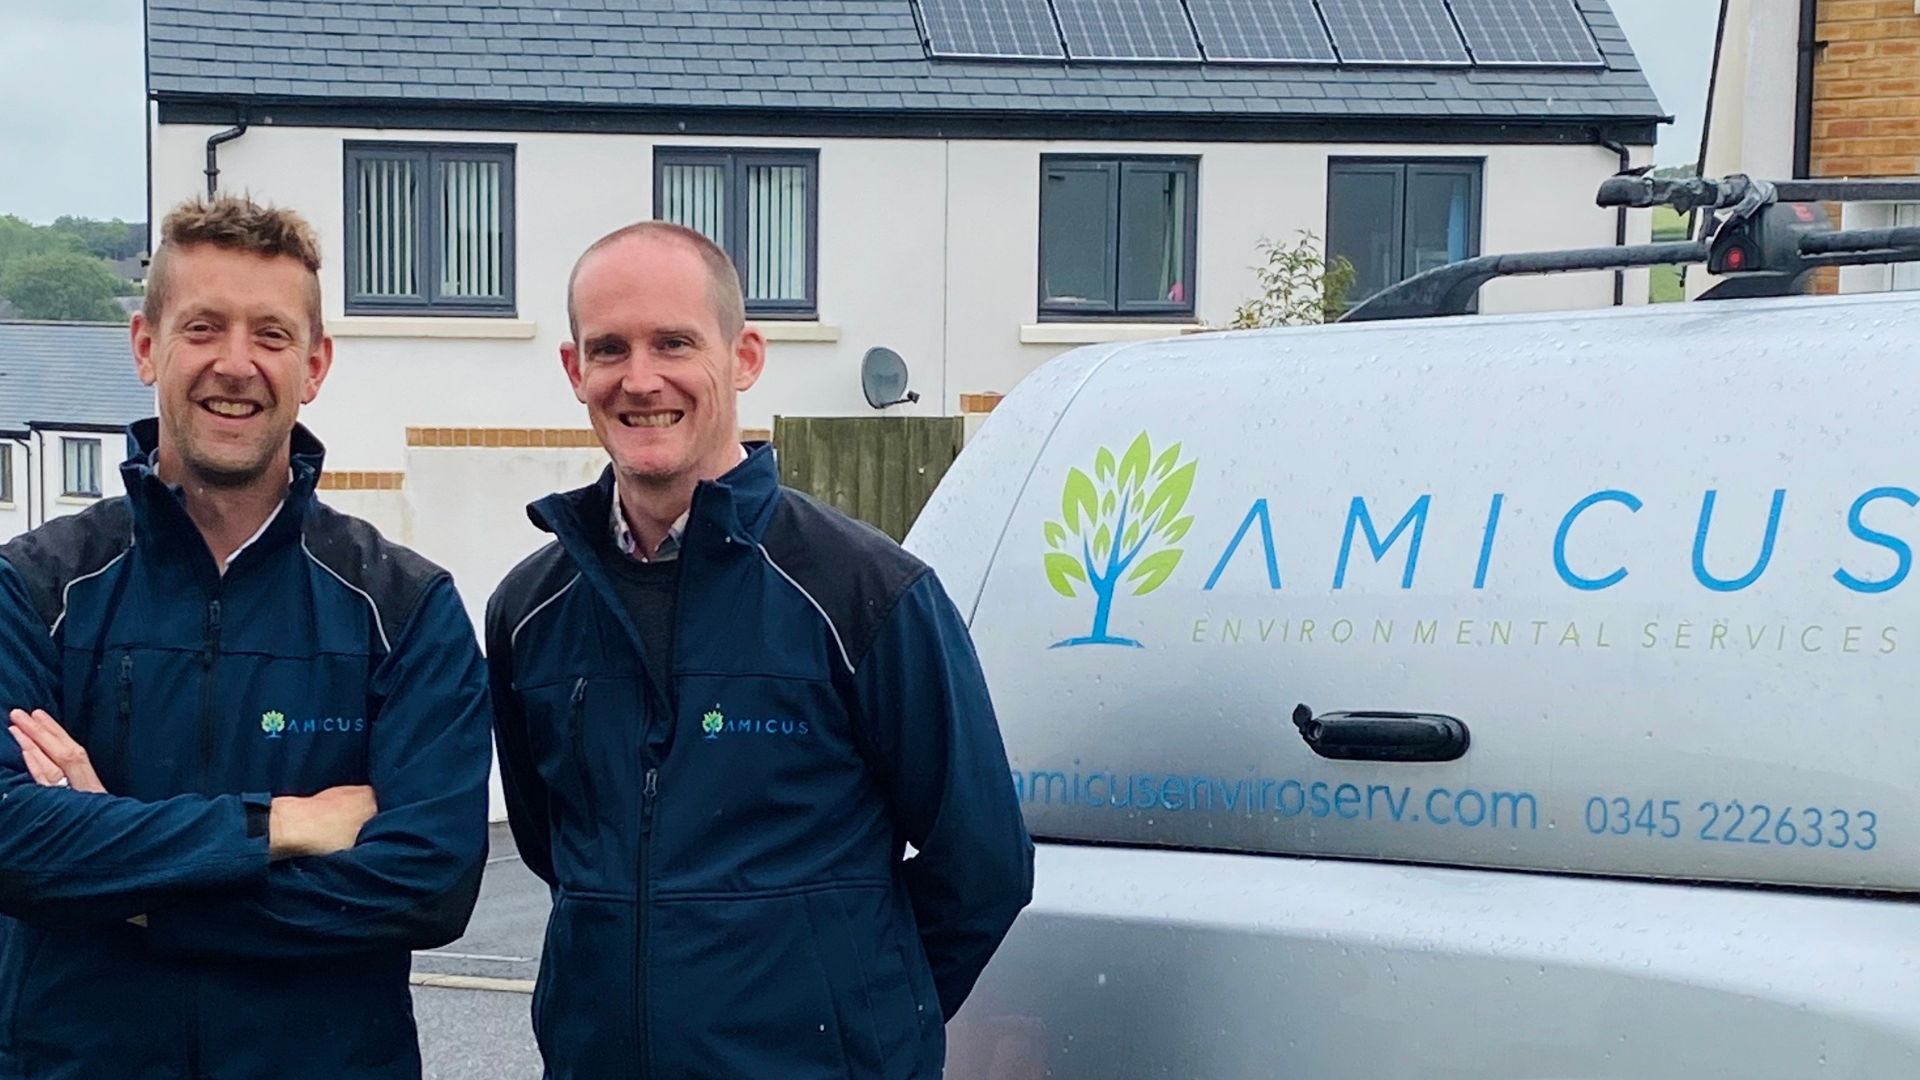 Senior leaders of Amicus Environmental Services